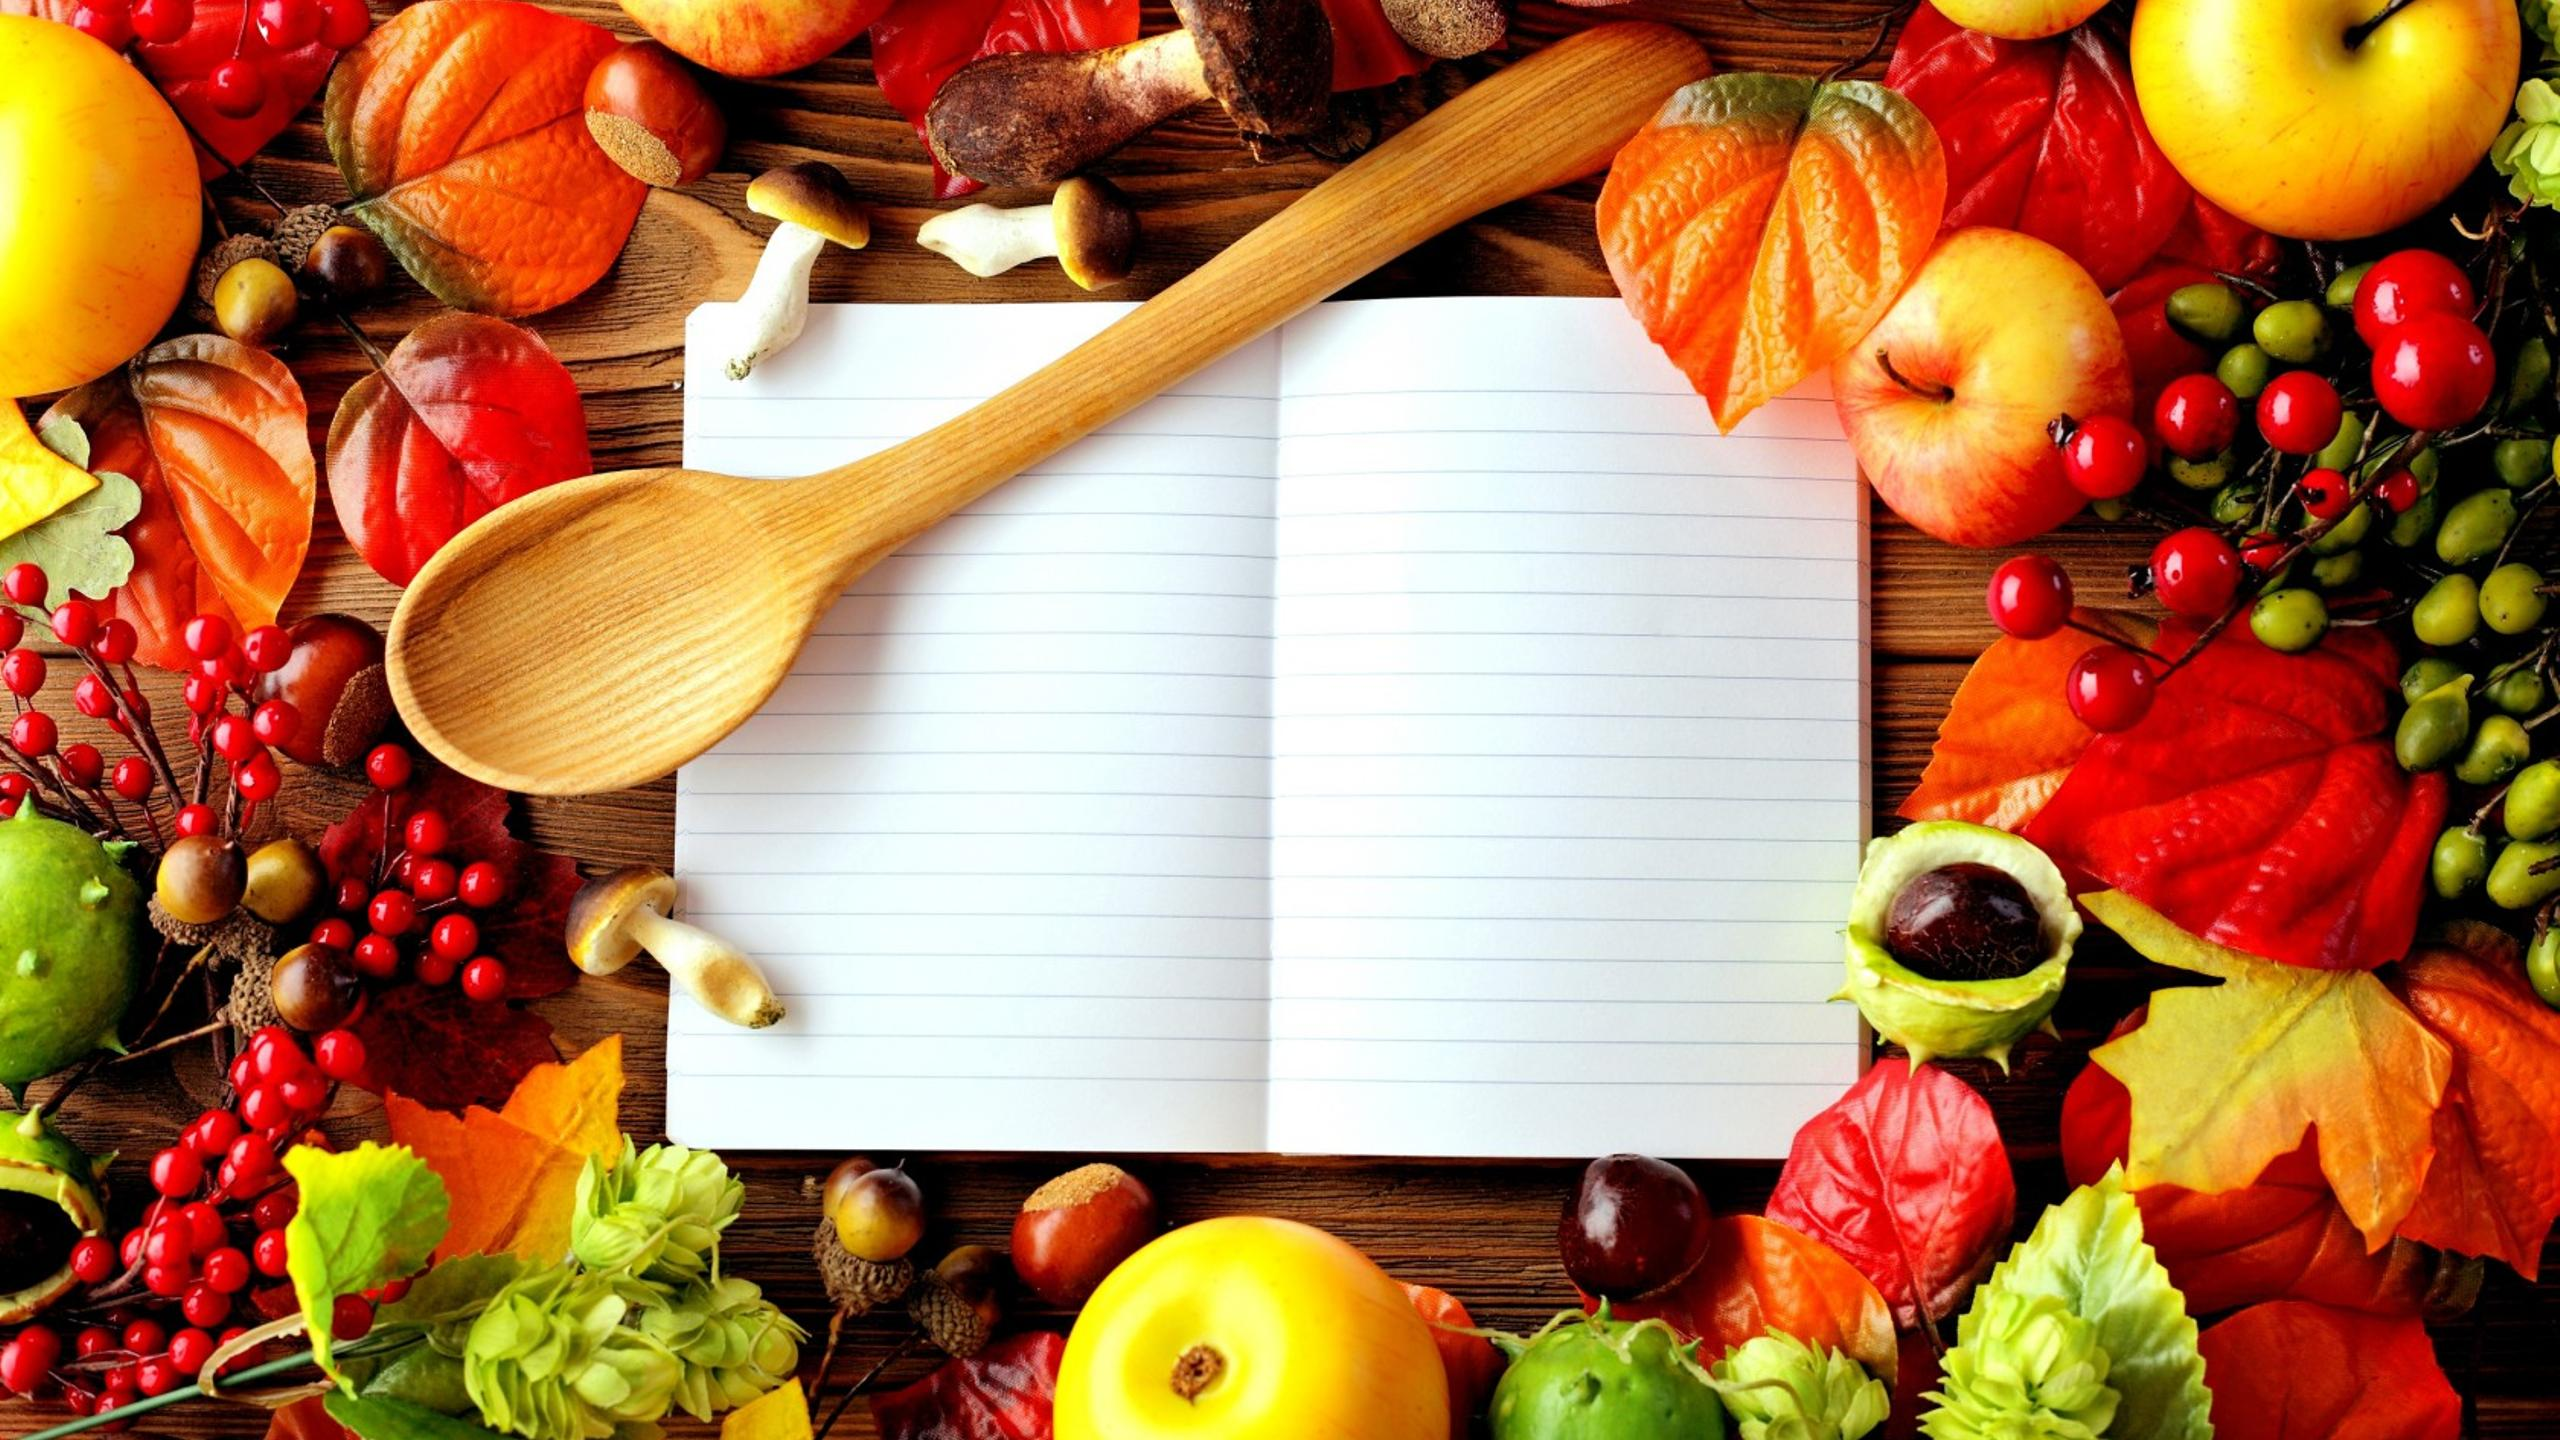 Your Secret Book With Food Recipes Wallpaper Download 2560x1440